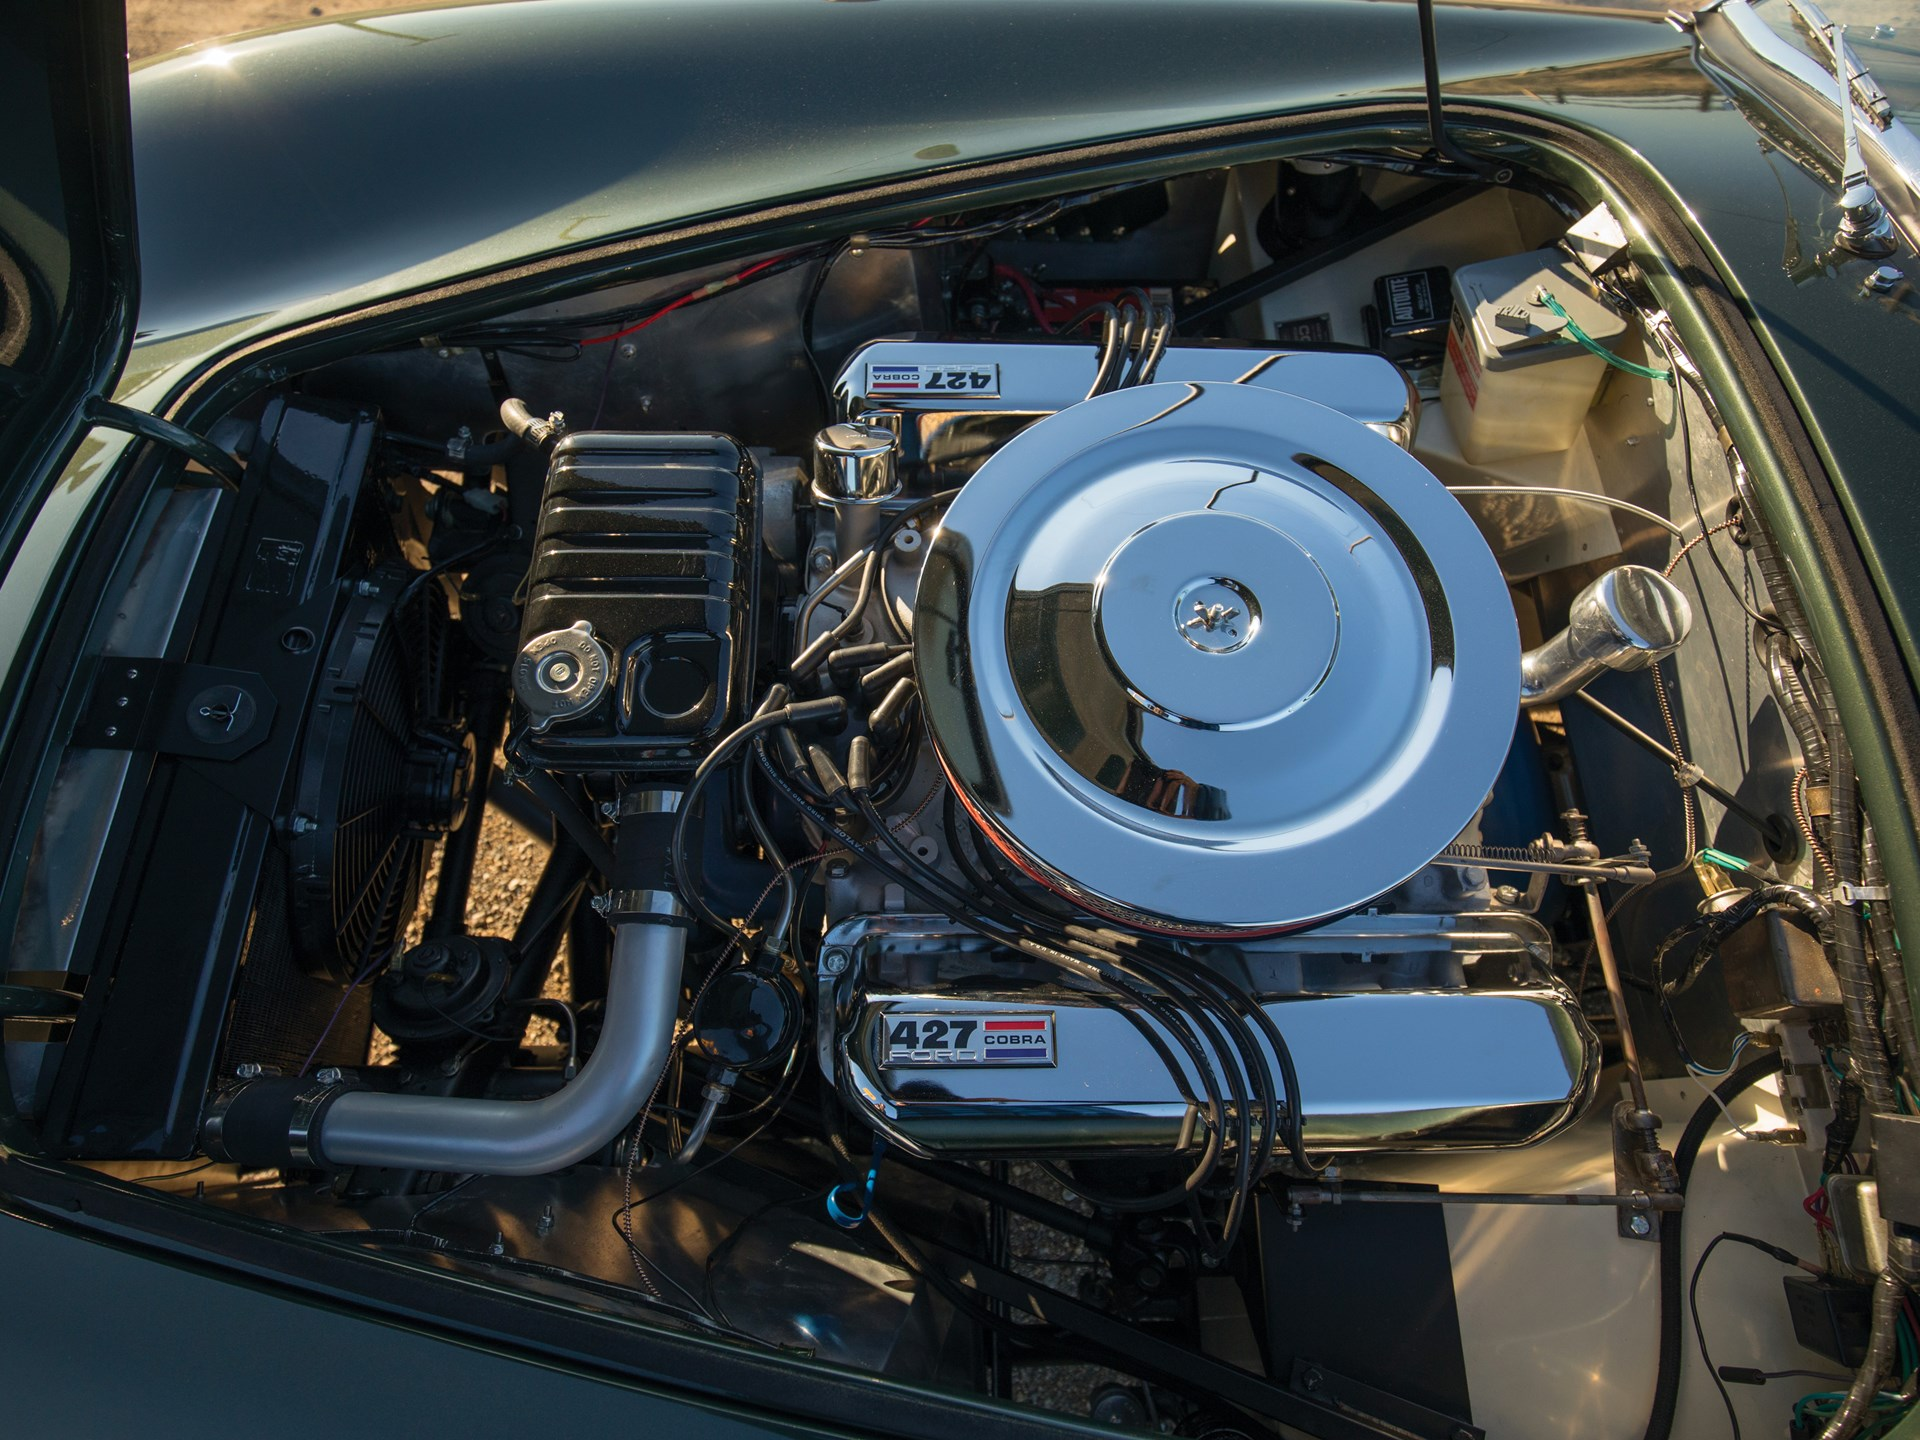 1967 Shelby 427 Cobra engine bay